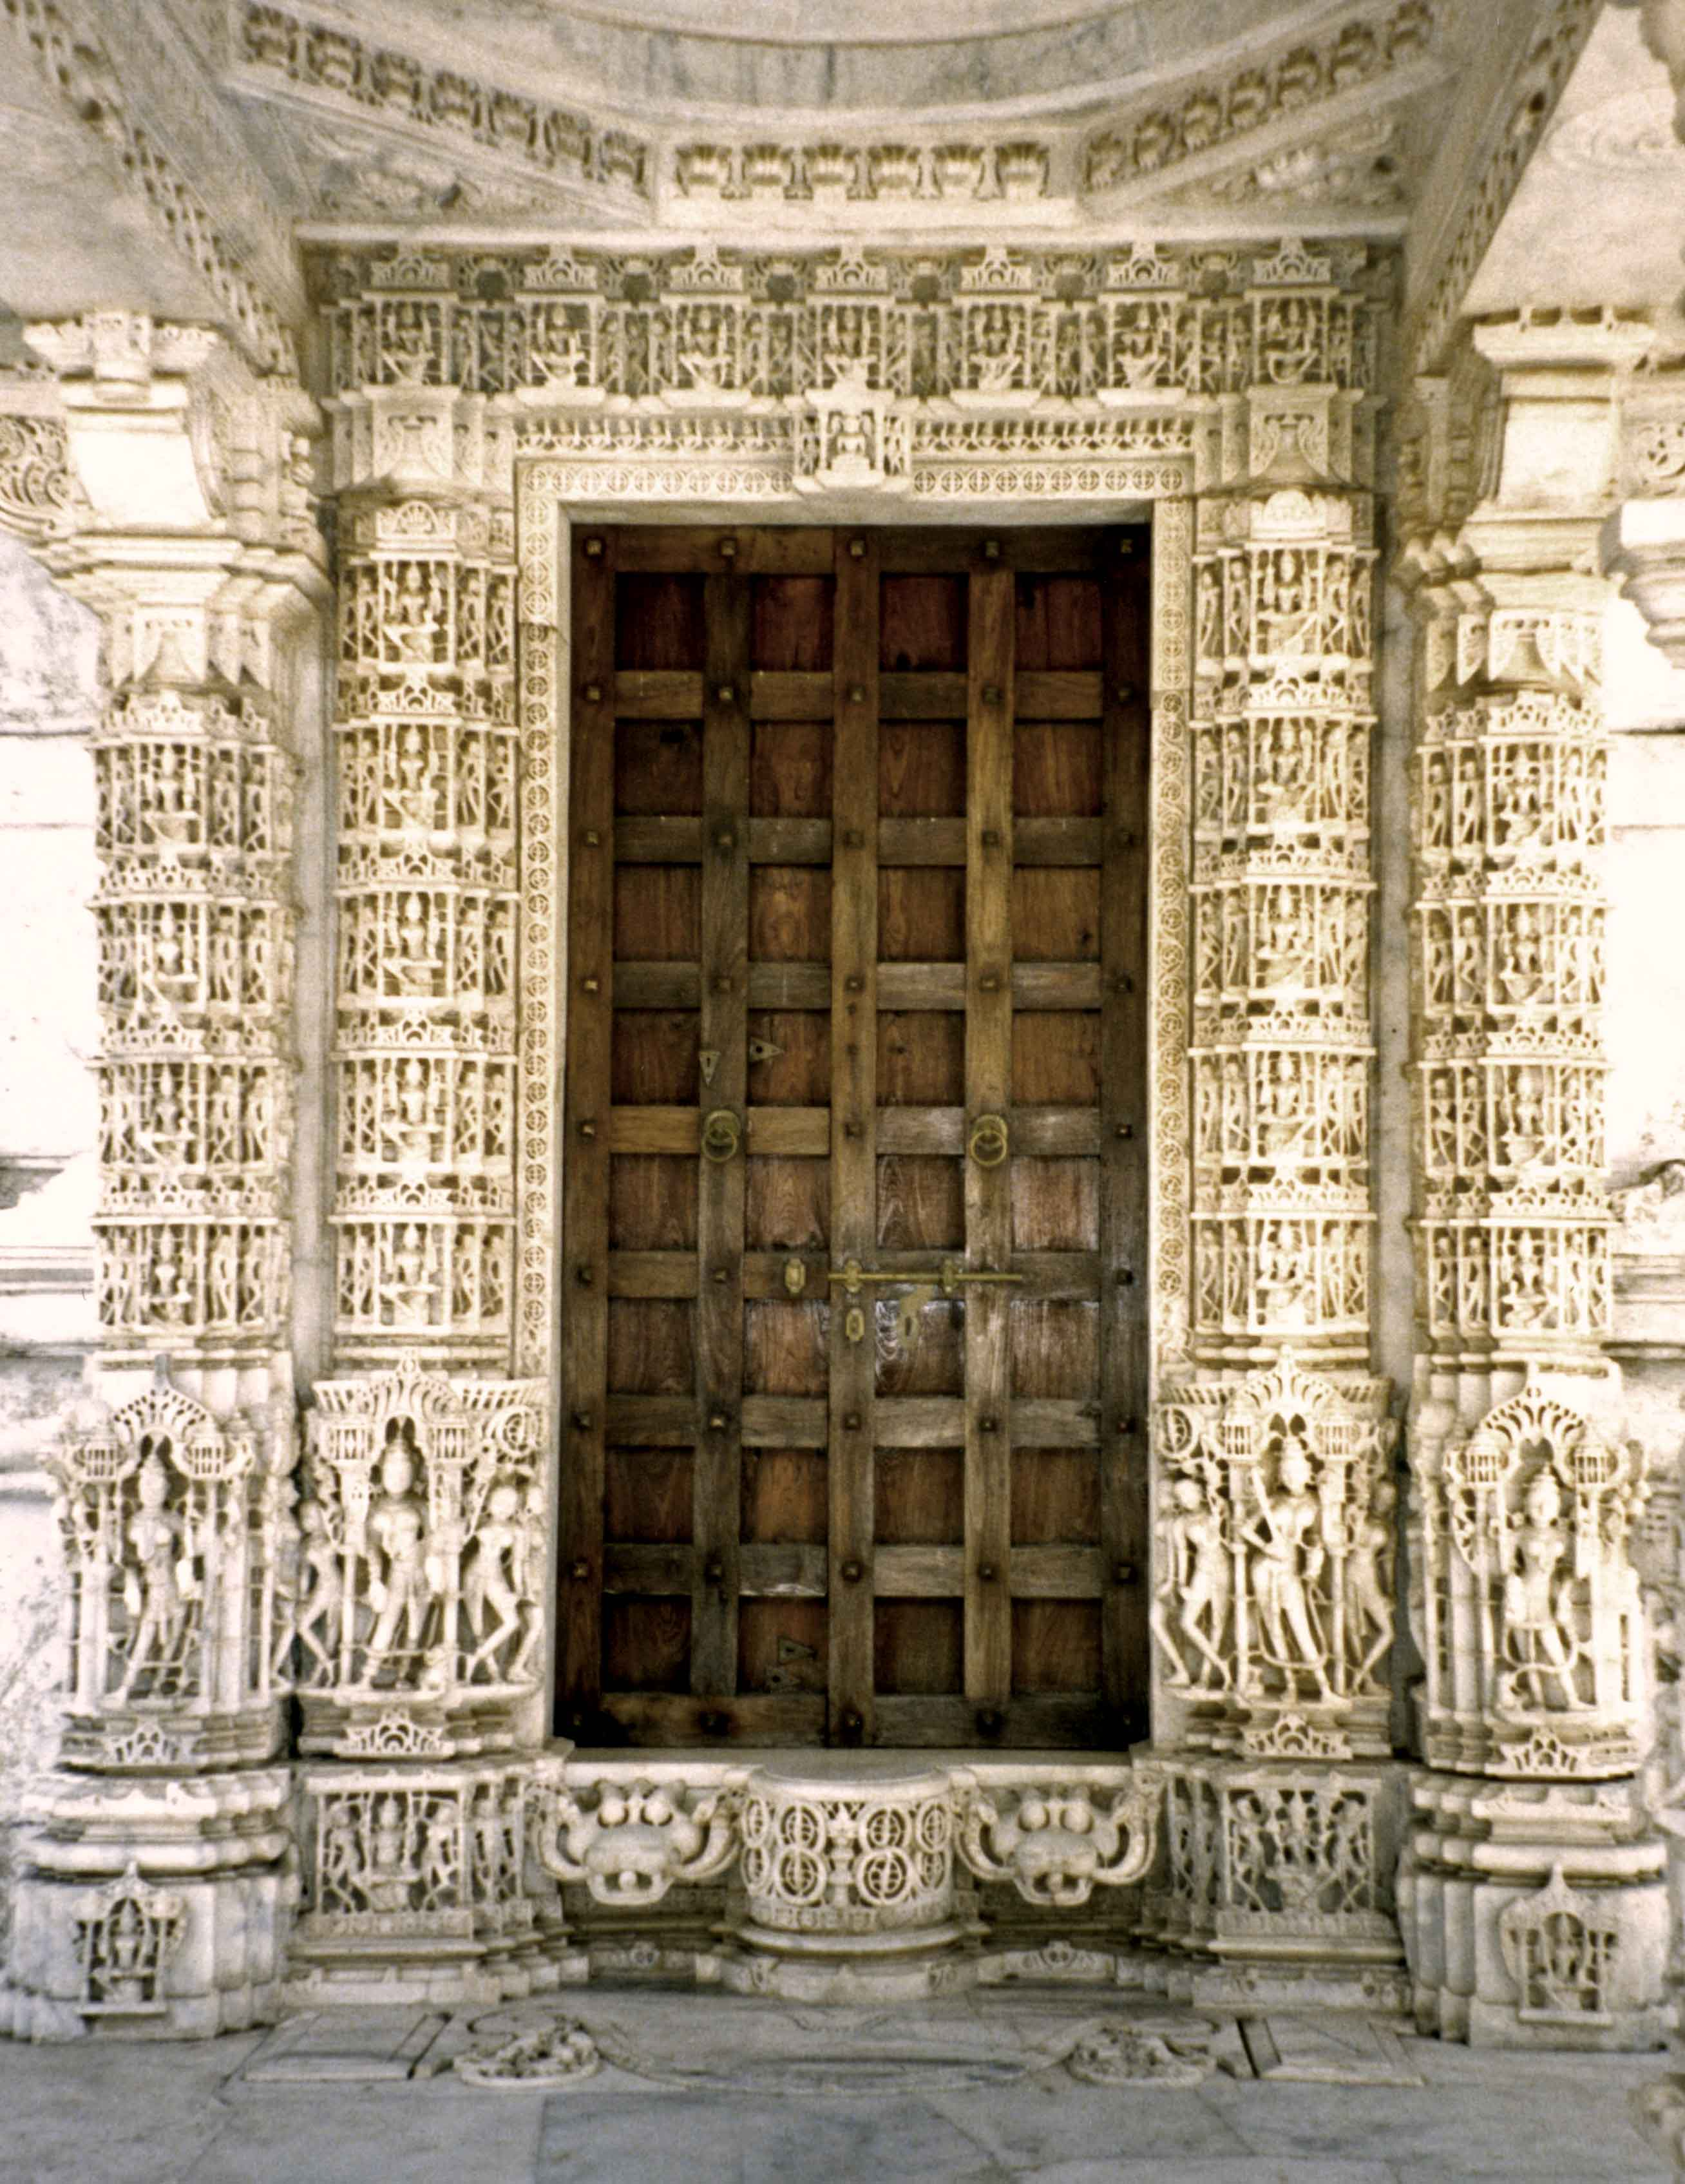 Talking about interior design door shutters mysticism for Temple inside home designs